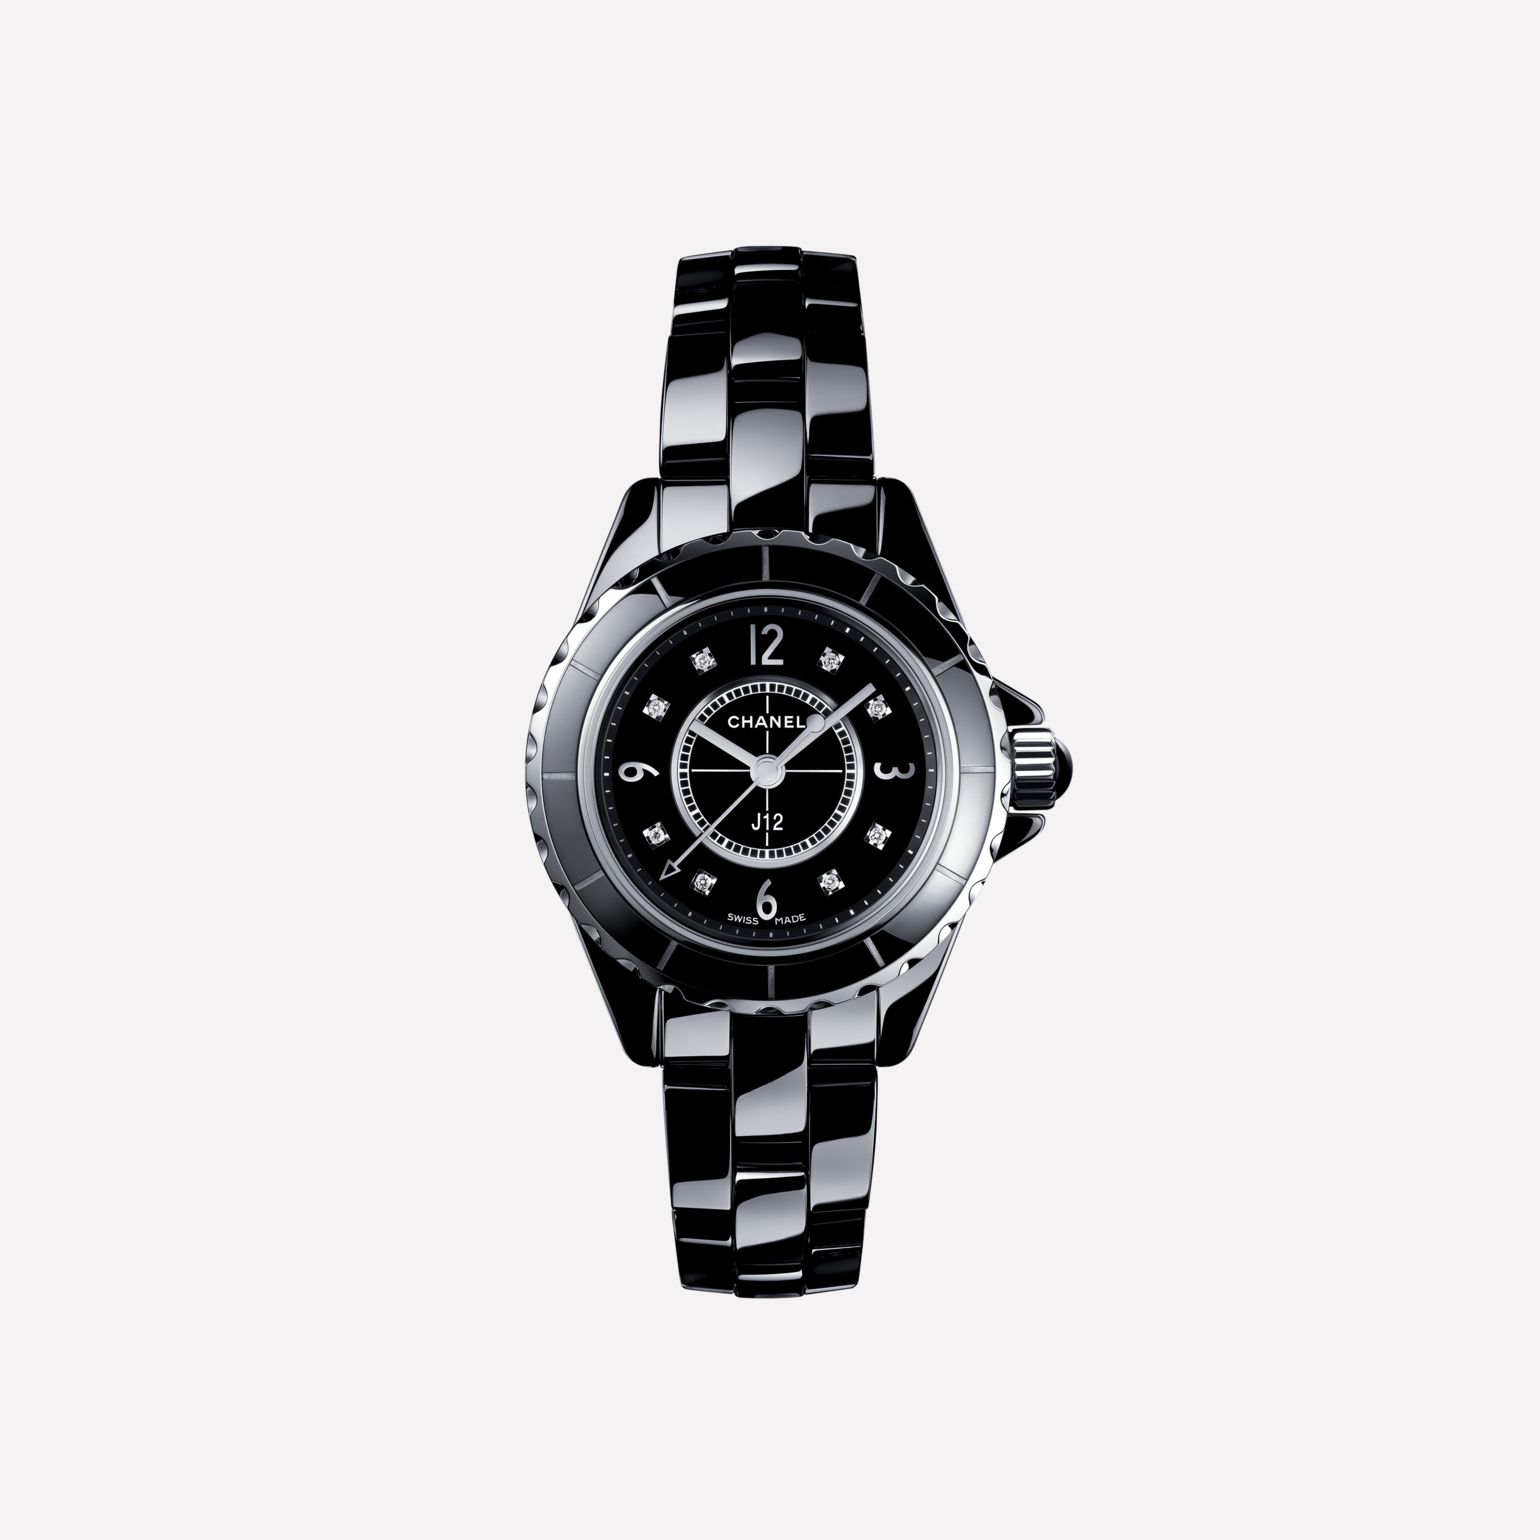 J12 Watch, 29 mm Black highly-resistant ceramic and steel, diamond indicators